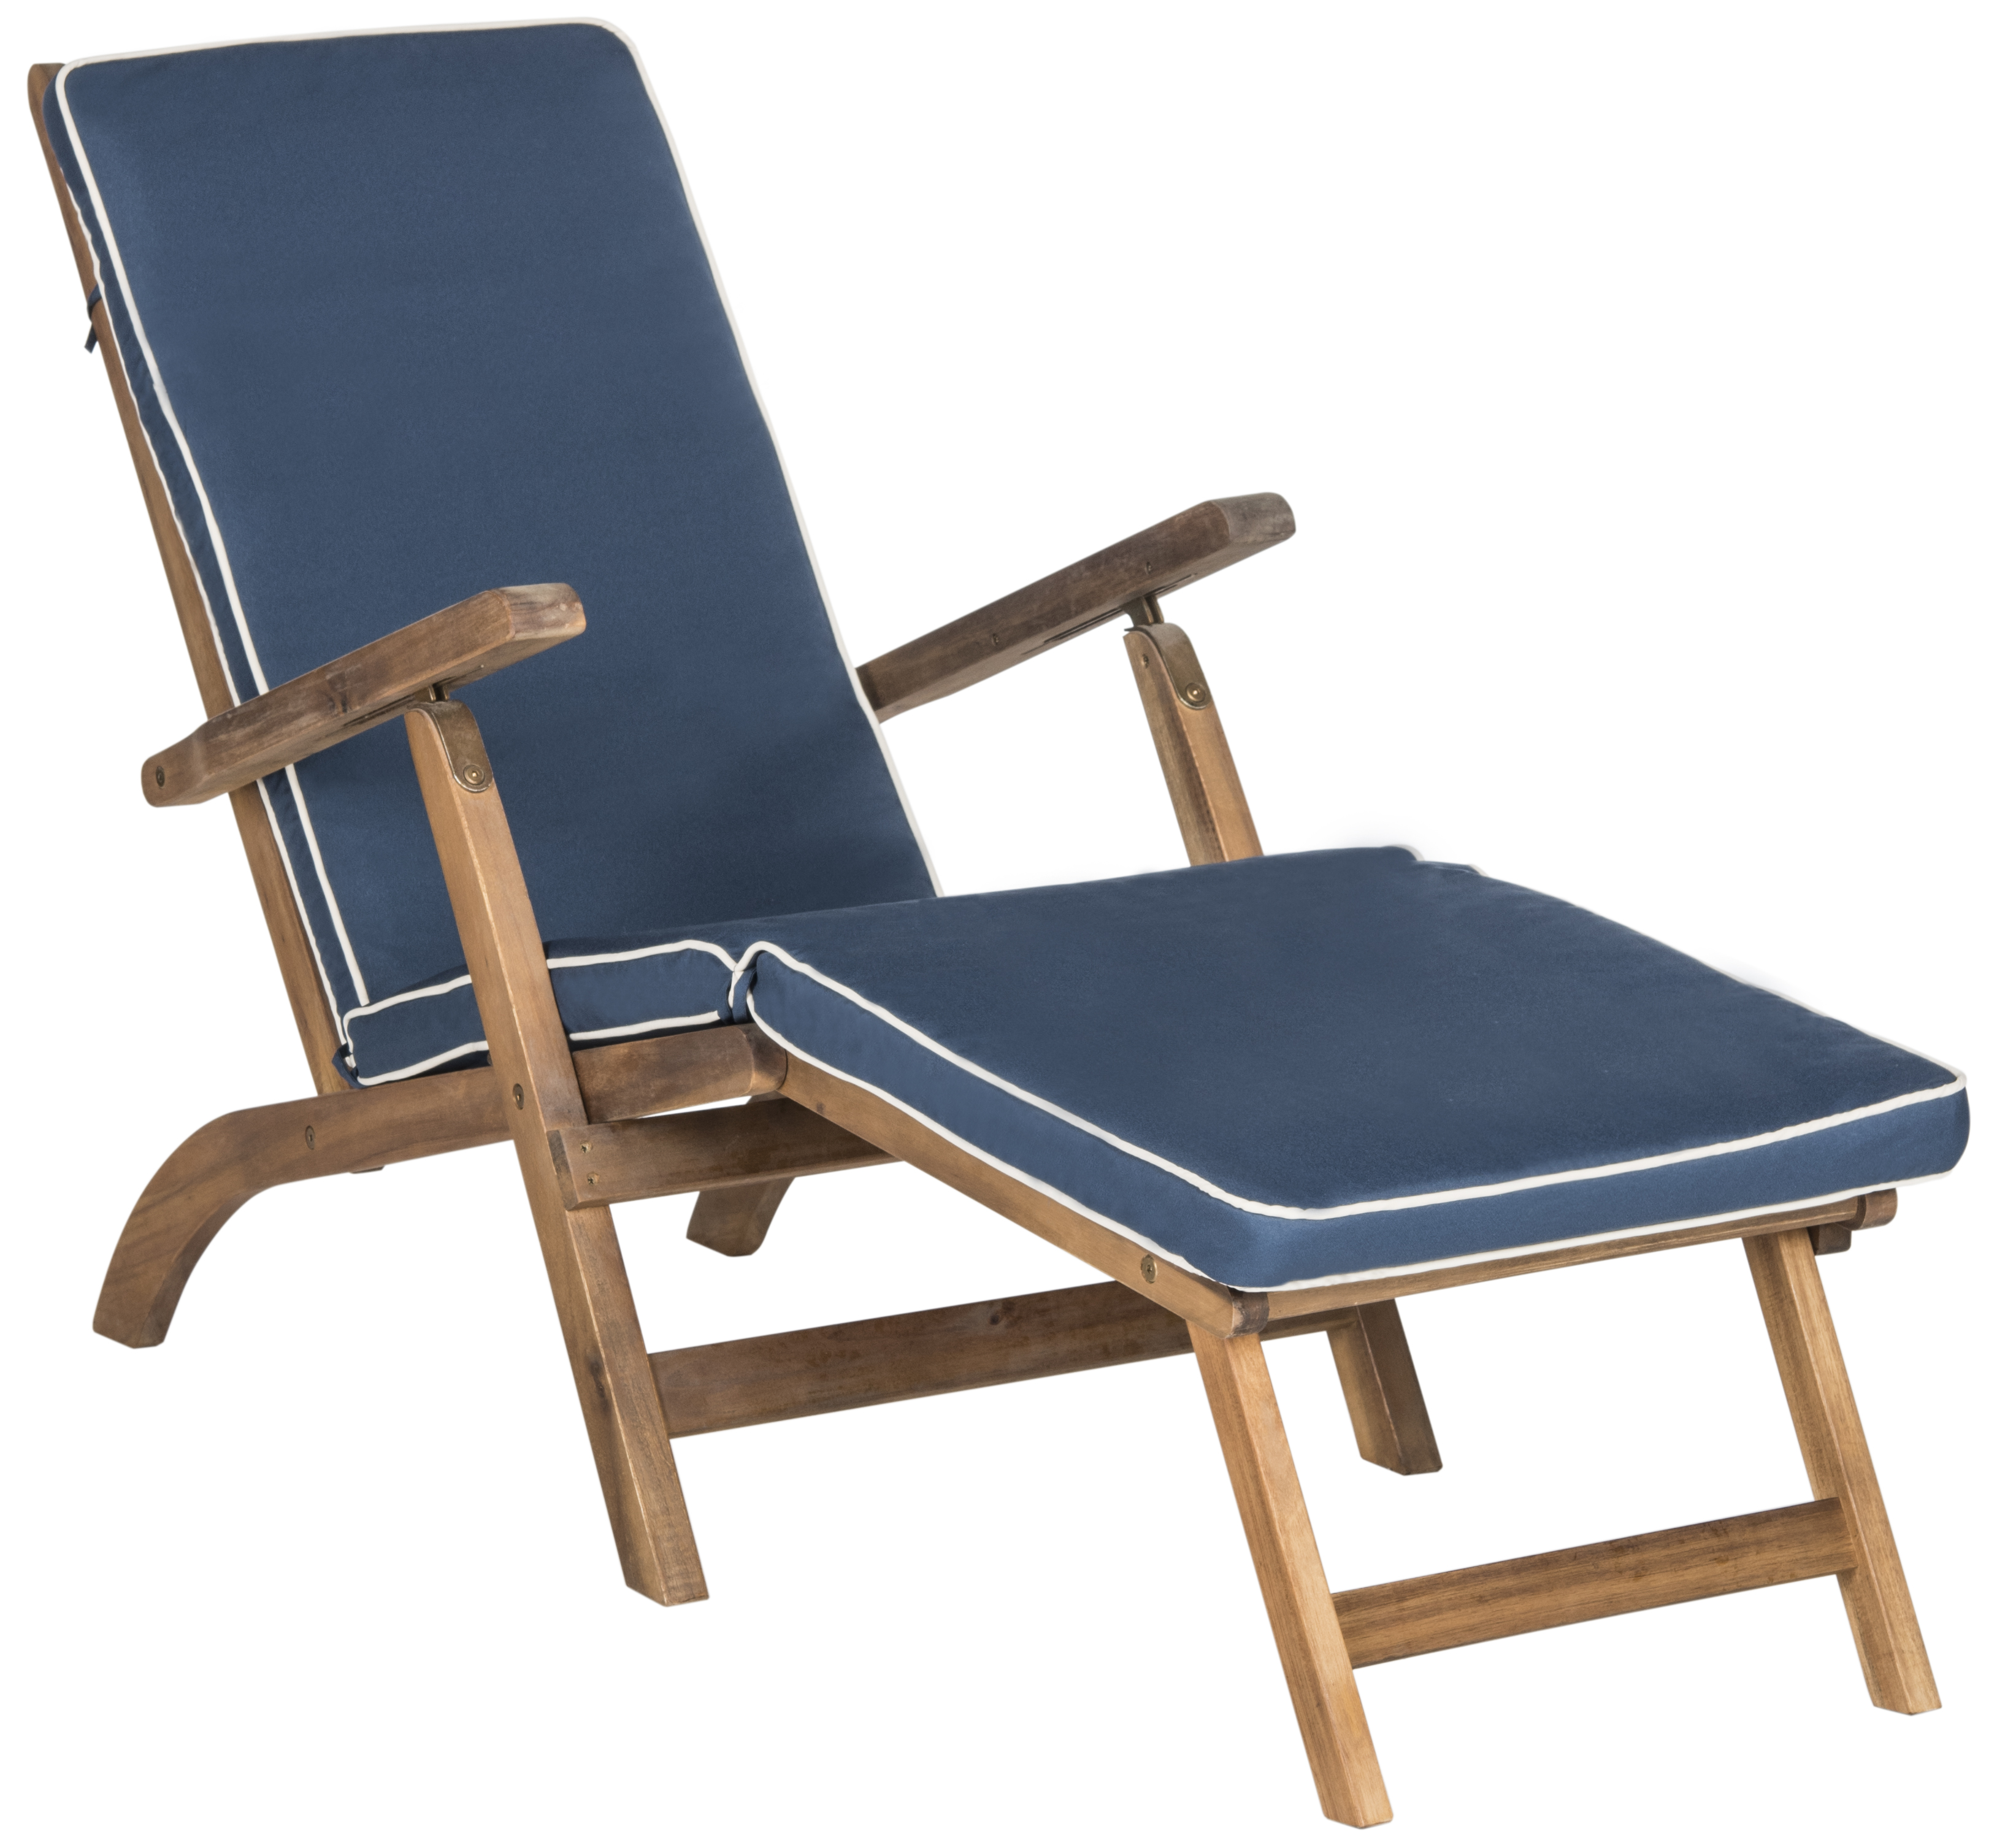 Safavieh Palmdale Outdoor Modern Foldable Lounge Chair with Cushion